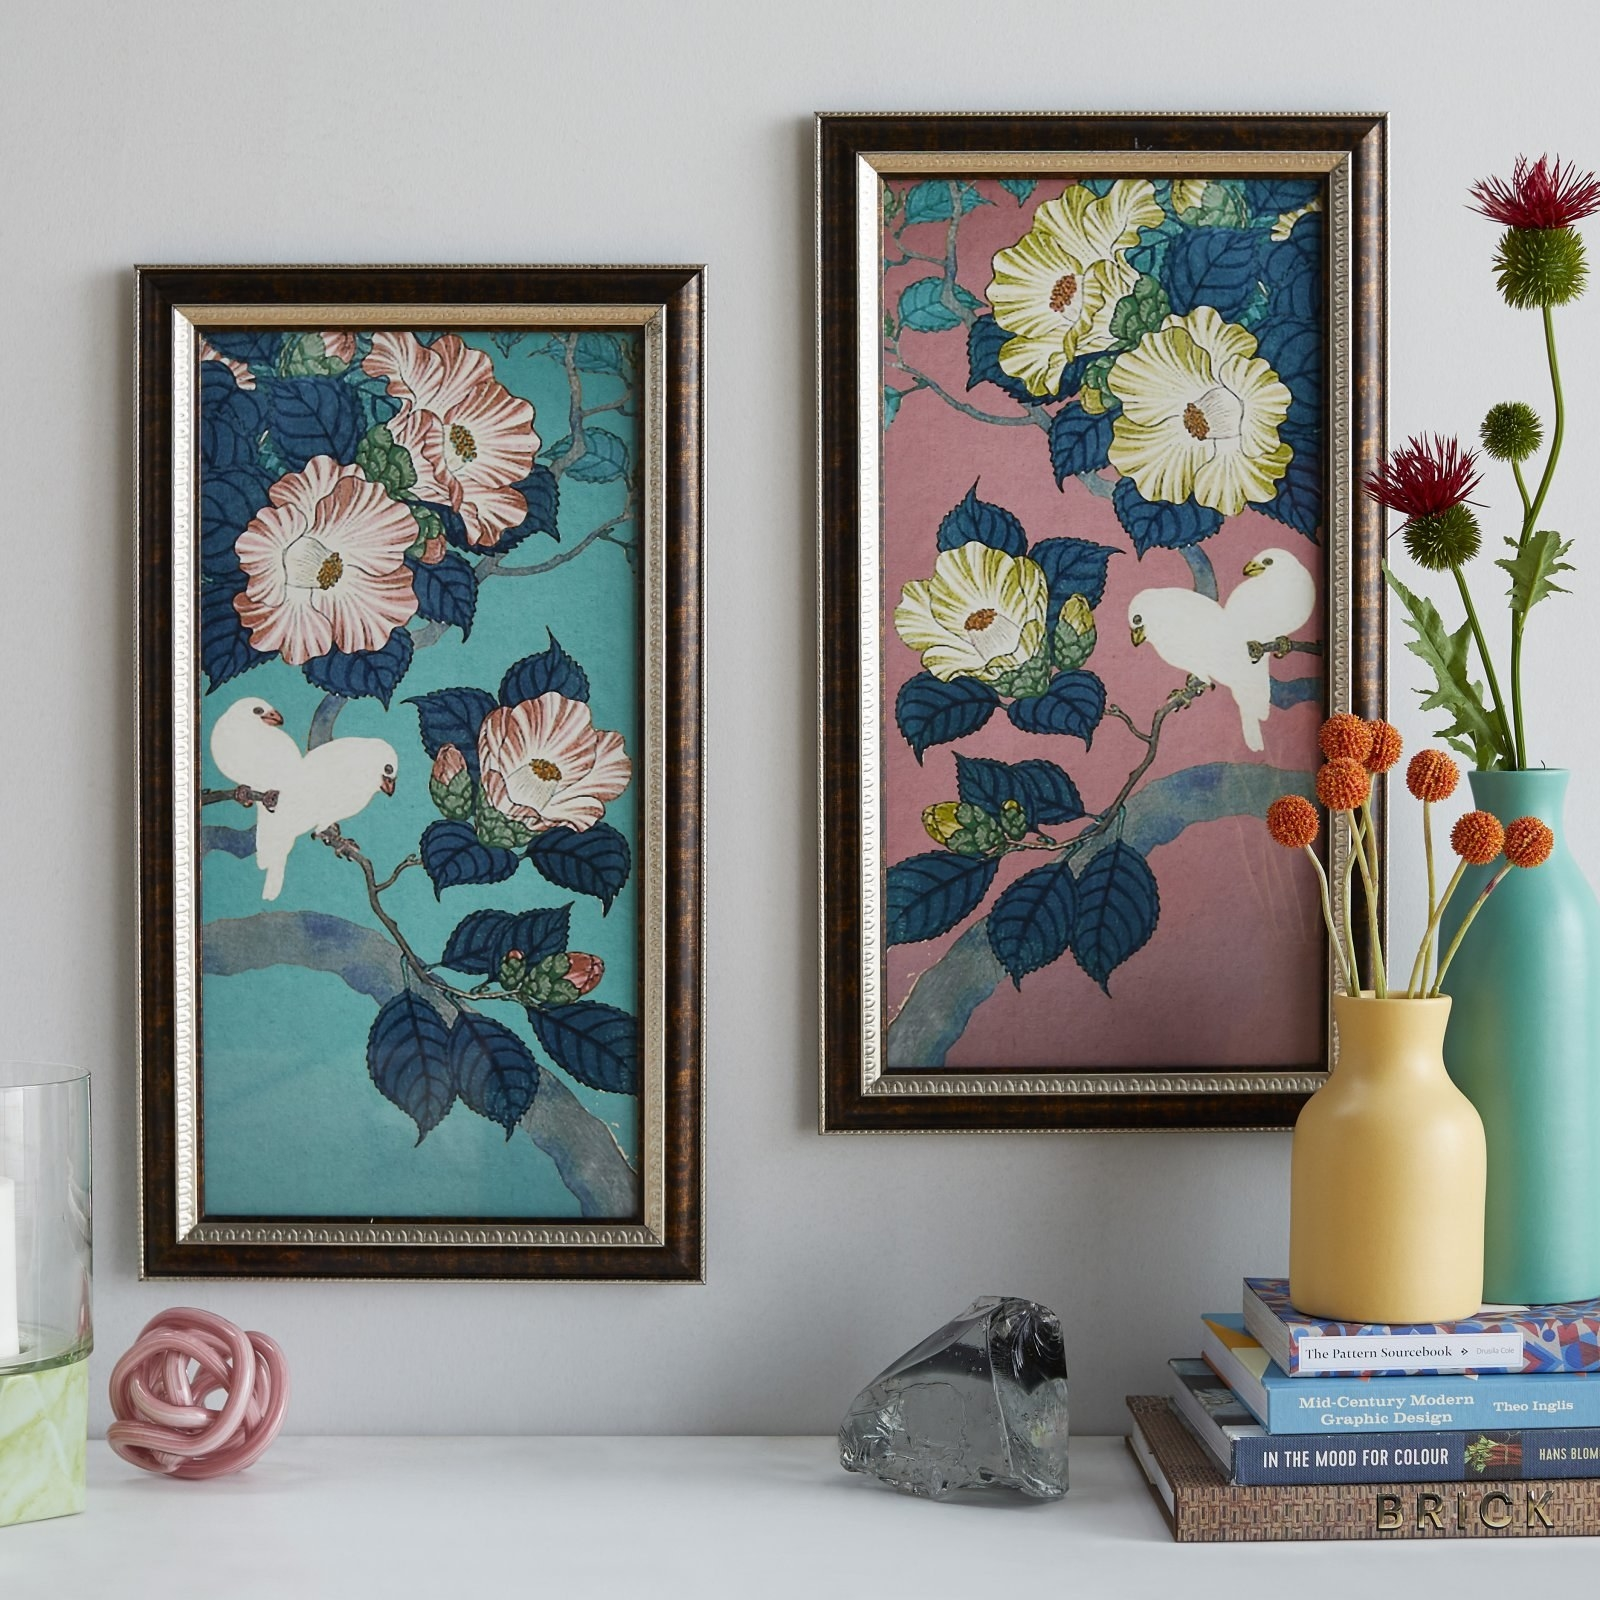 Pink and blue birds and vines painting